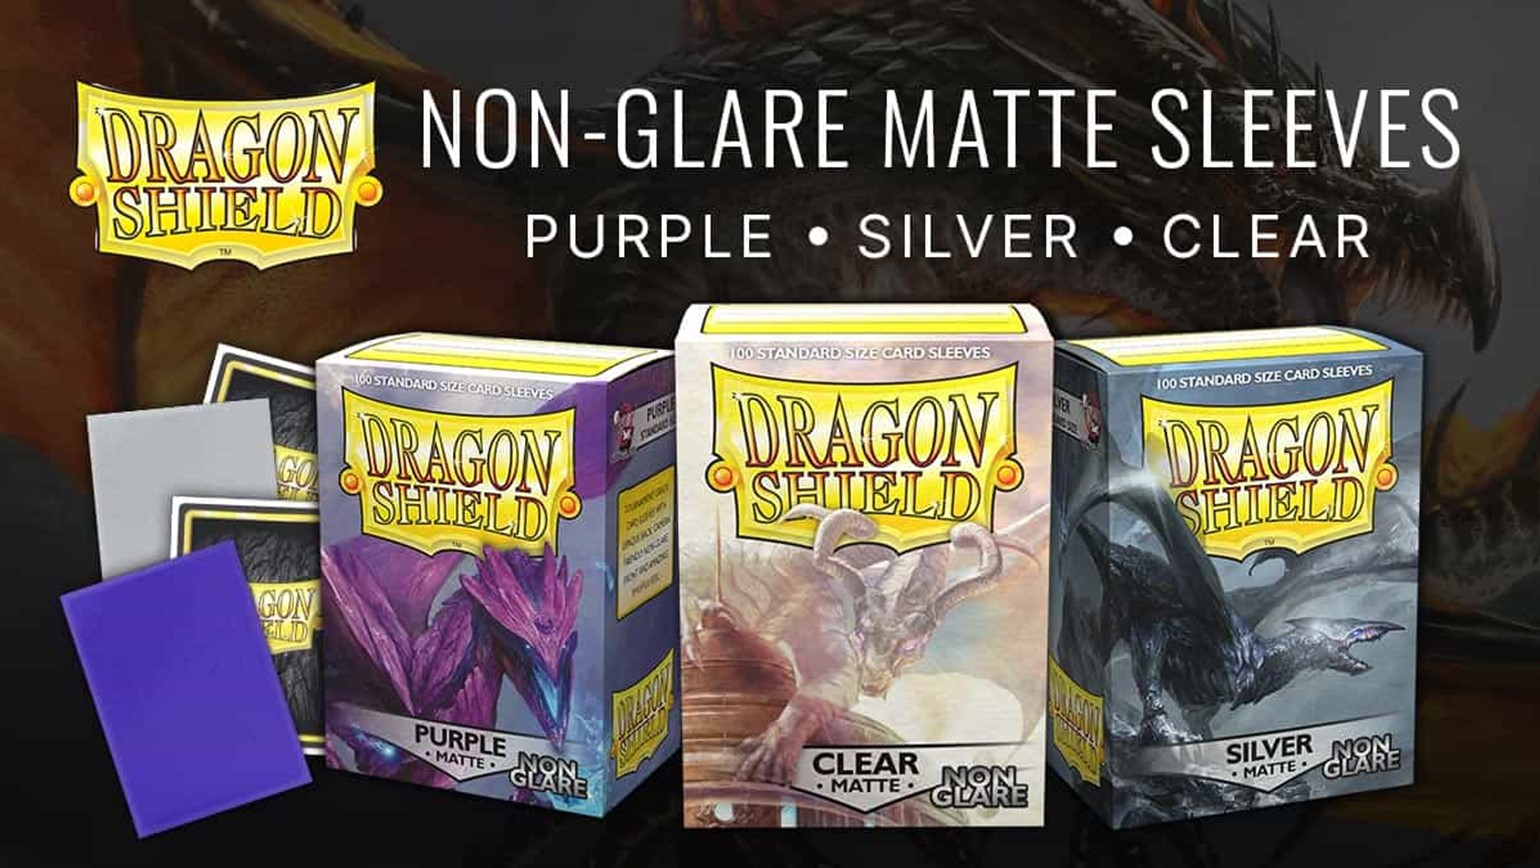 Dragon Shield Non-Glare Matte Purple, Silver and Clear Sleeves Added to TCGplayer Catalog